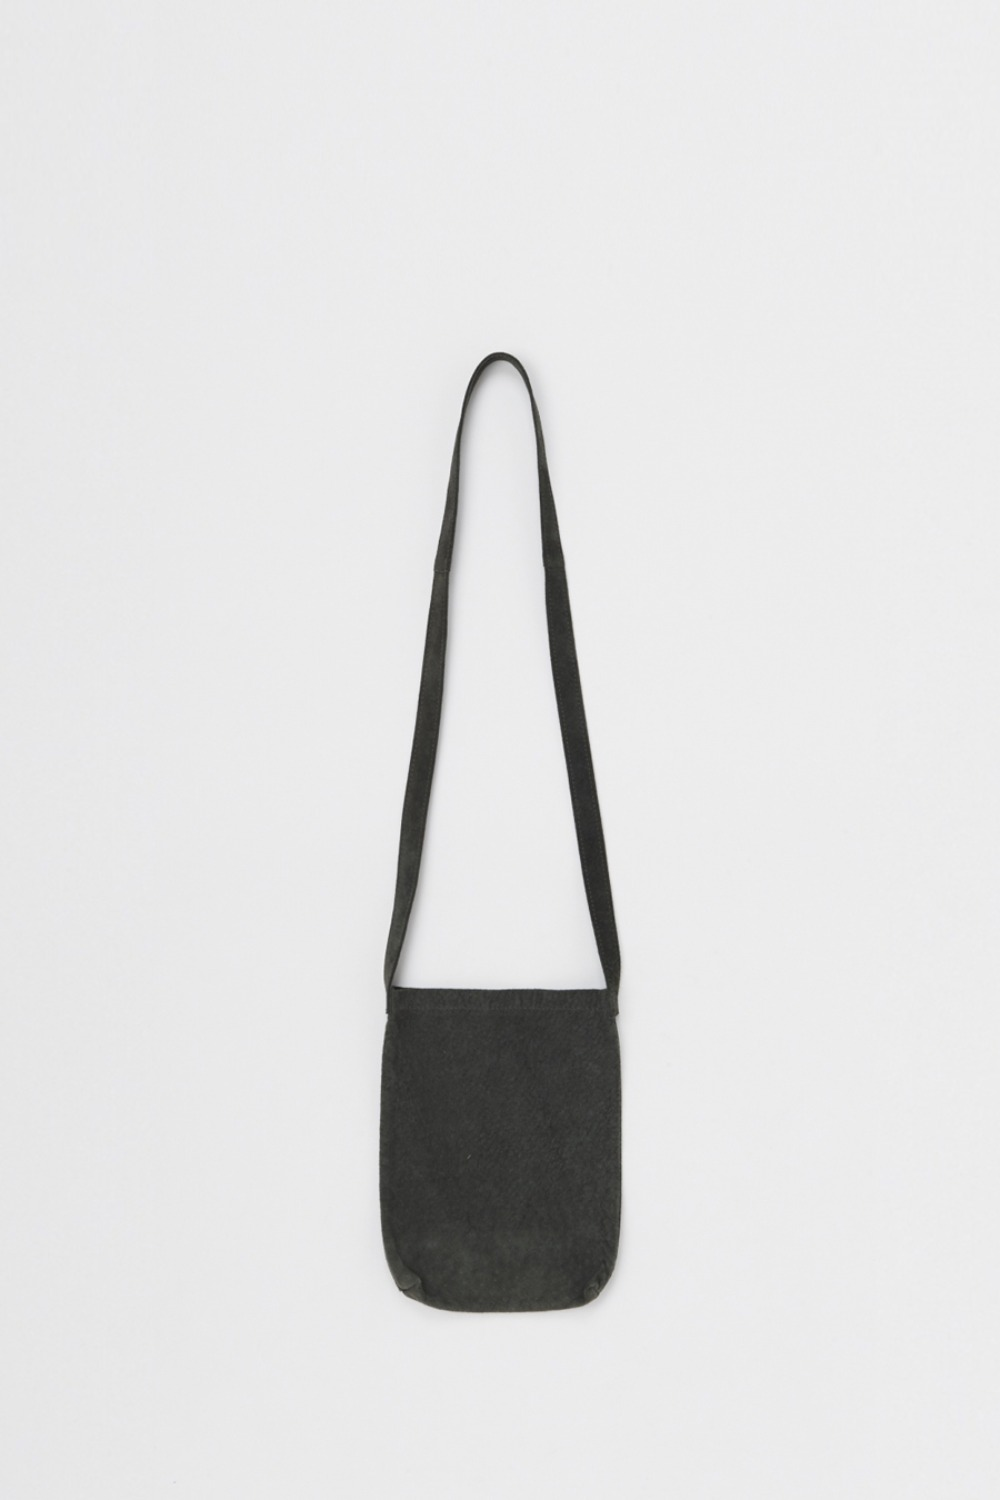 DE-RB-PSS SHOULDER BAG PIG LEATHER SMALL DARK GREY